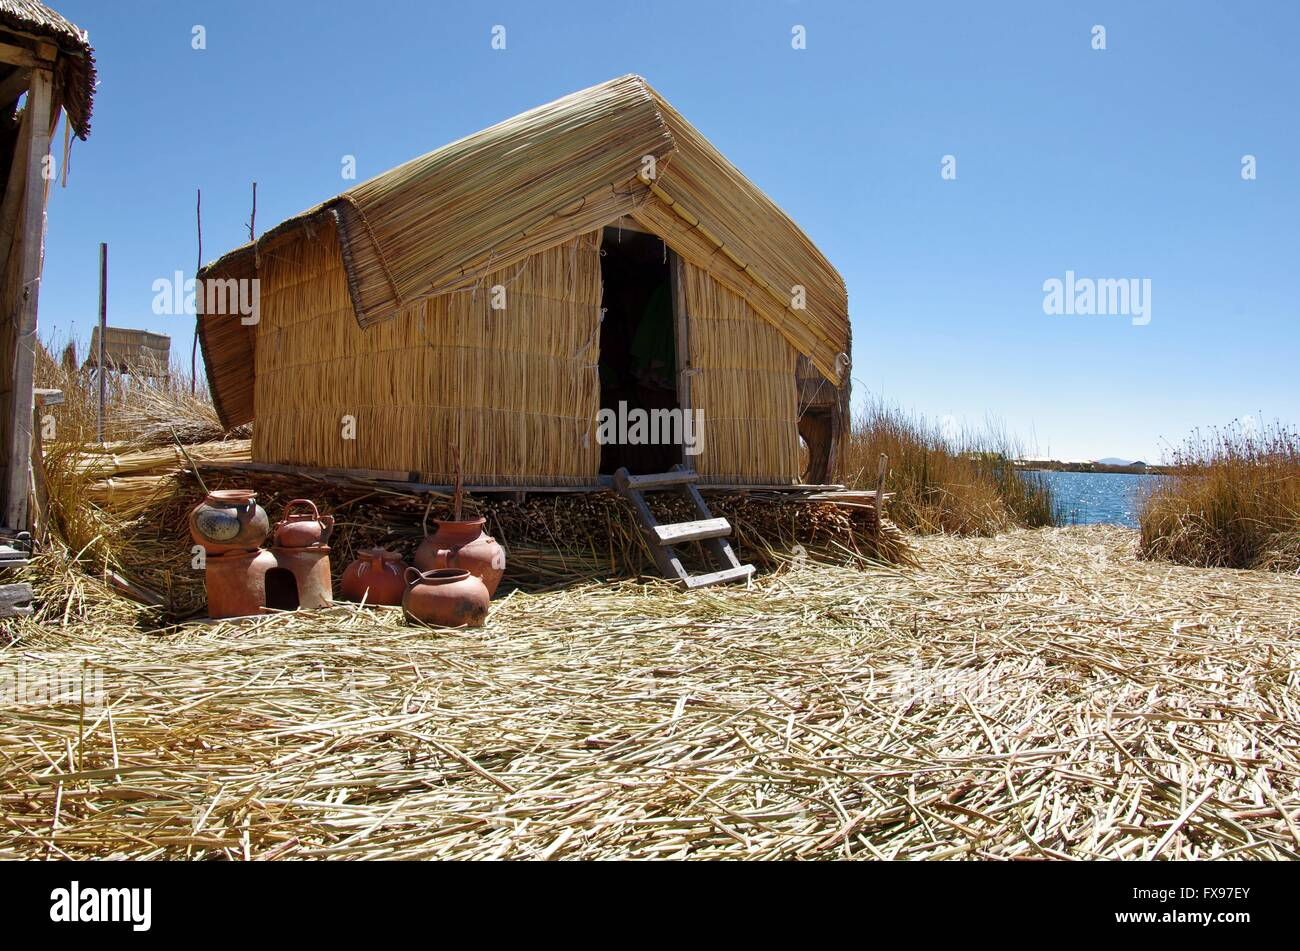 Reed hut/s on a reed island of the Peruvian Uros people, living five kilometers away from Puno on Lake Titicaca. - Stock Image